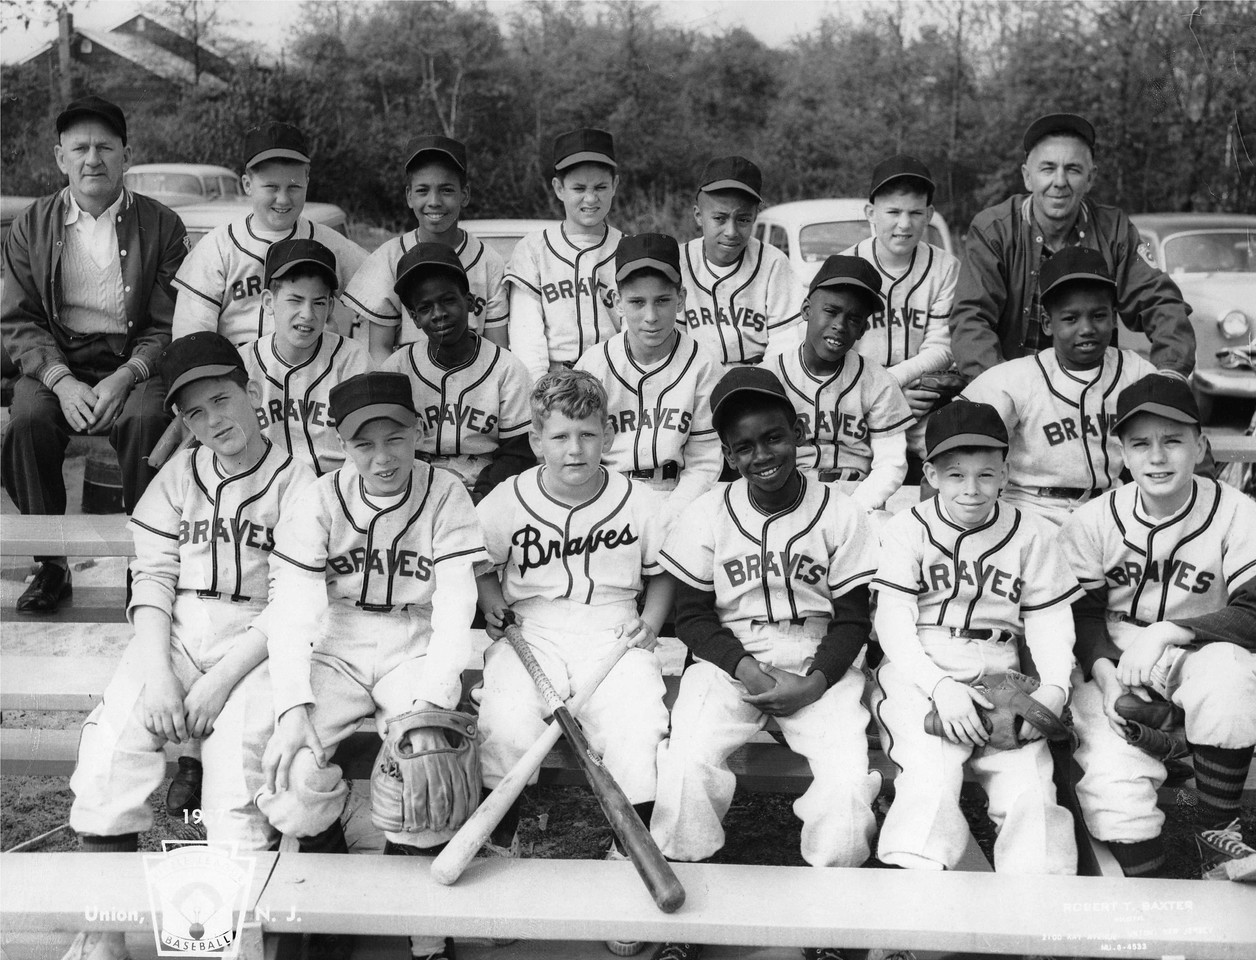 Elliott Maddox poses with his Little League team. Last row, second kid from the right.